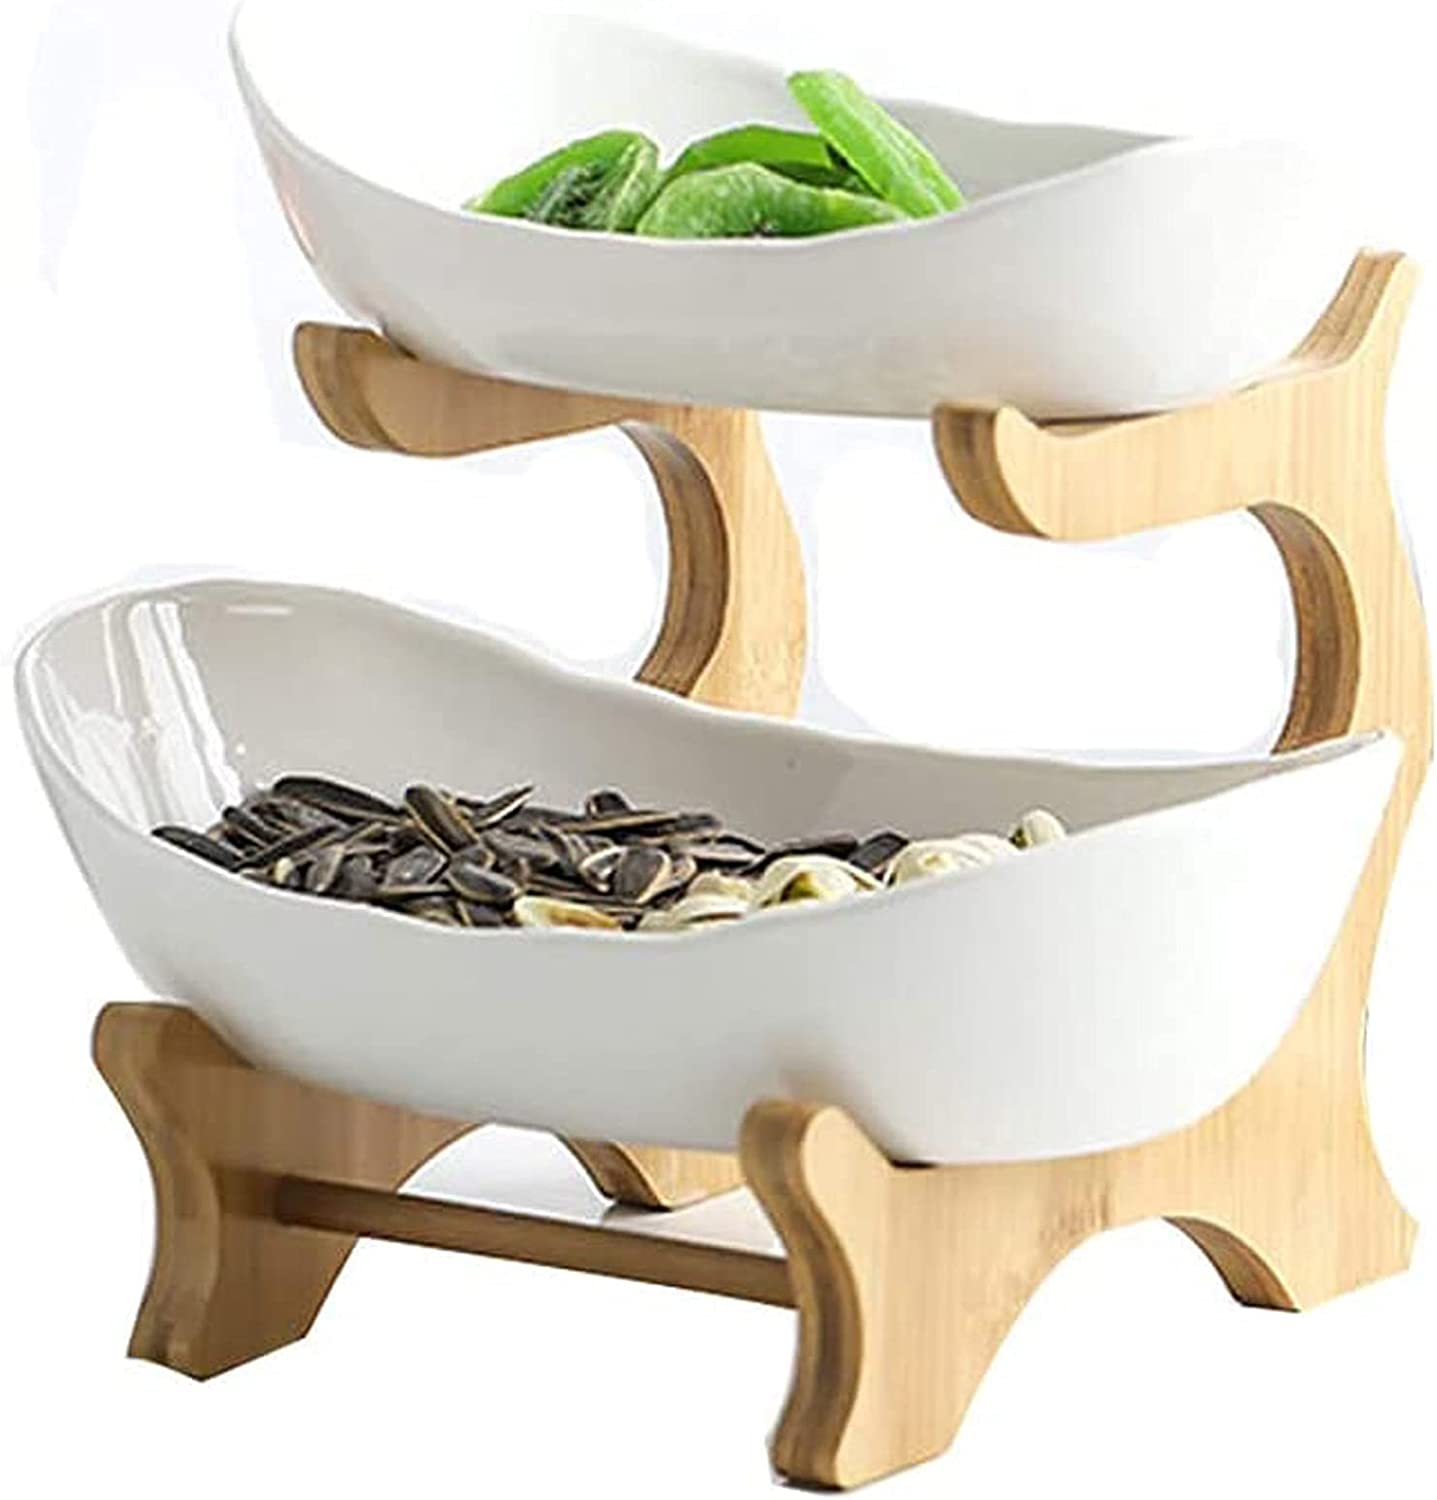 MOOLO Fruit Bowl, Fruit Basket Holder 2/3 Tier Bamboo Stand and Ceramic Tray Fruit Plate Tea Table Decoration for Party Food Server Display Set(Size:2 Layer,Color:White)